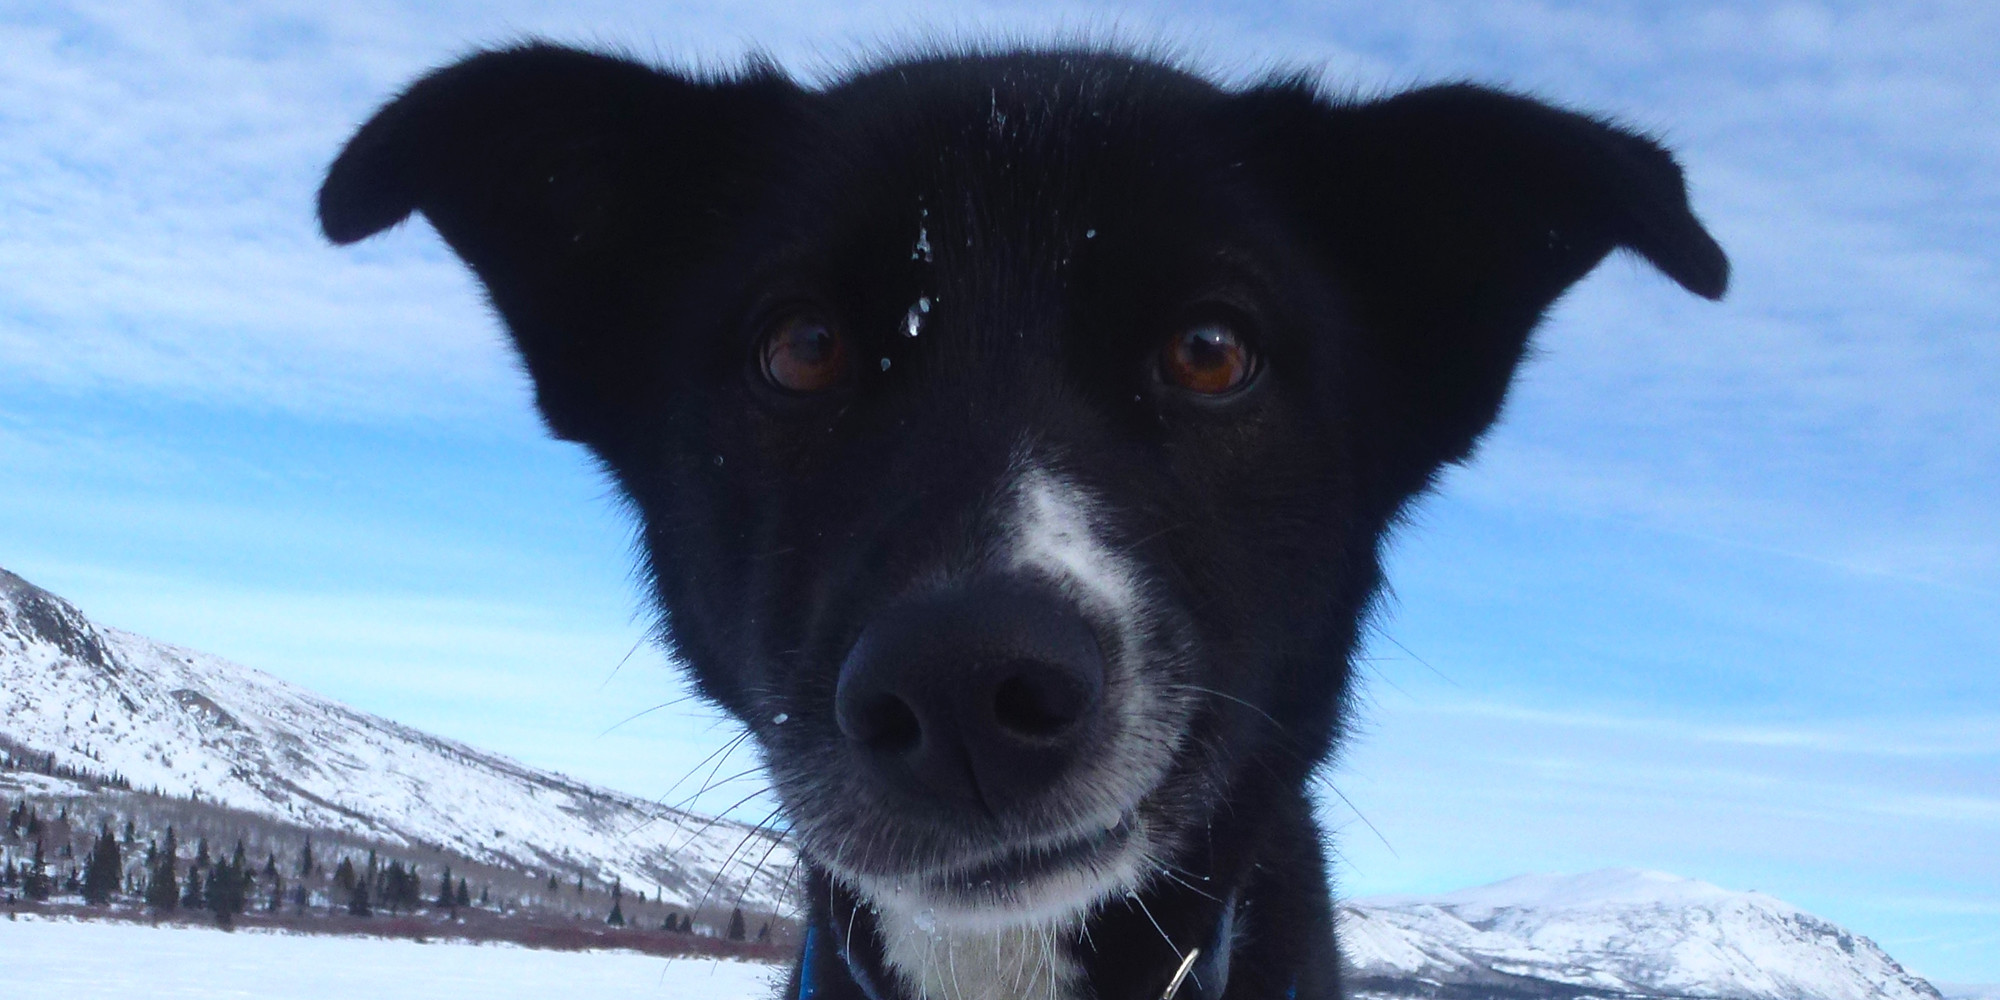 Into the Wild Adventures, dog sledding tours and winter adventures in the Yukon Territory, Canada - Mushing 101